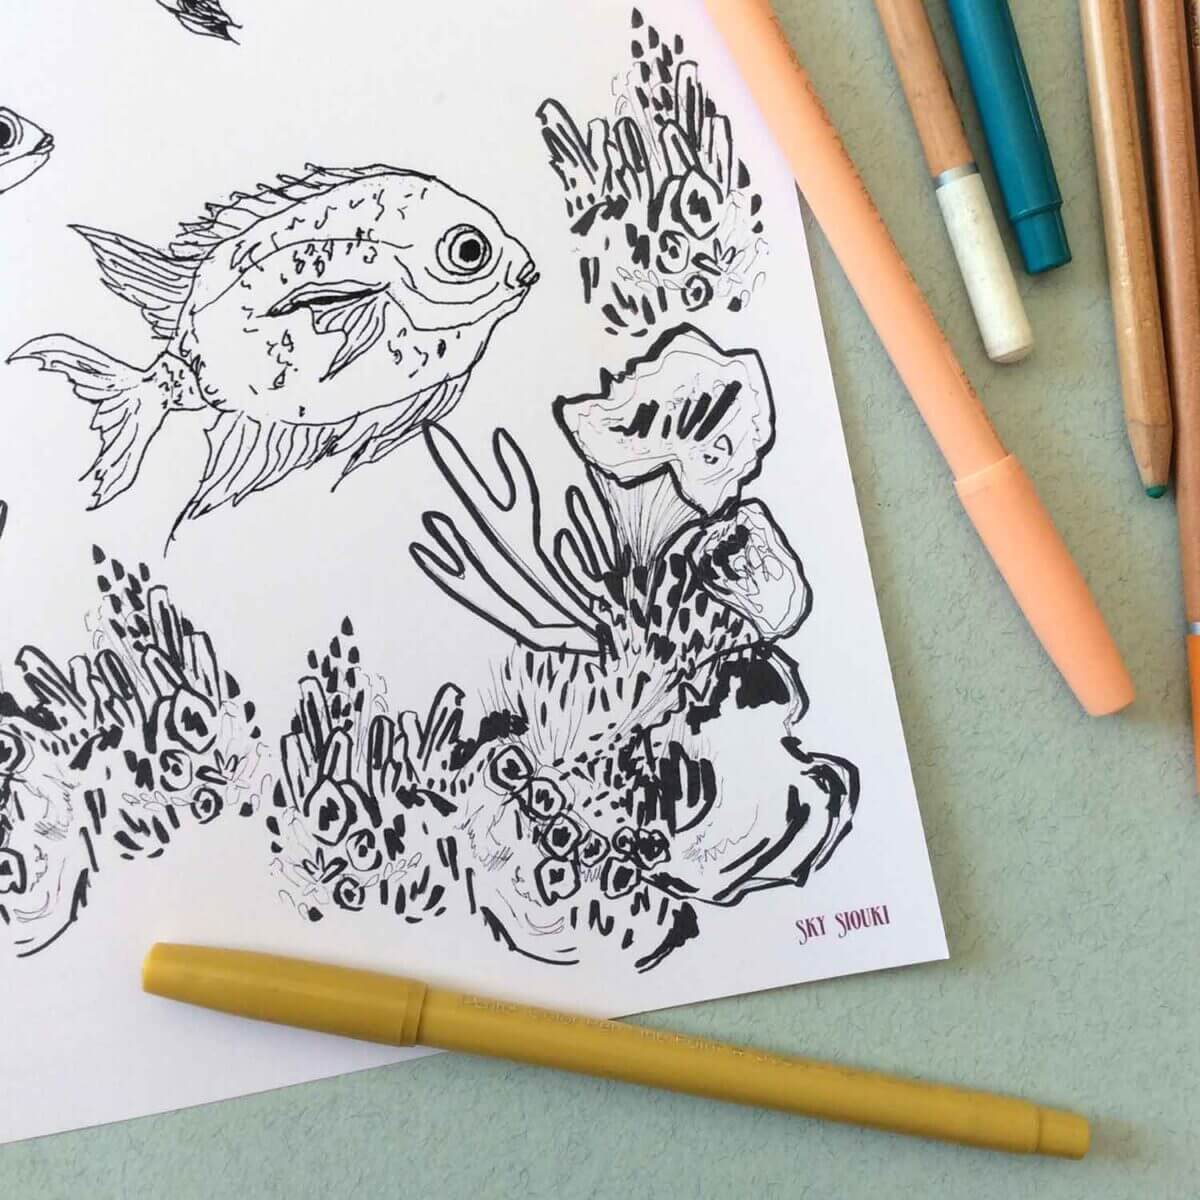 Under-The-Sea-Colouring-Sheet-Coral-Detail-Sky-Siouki